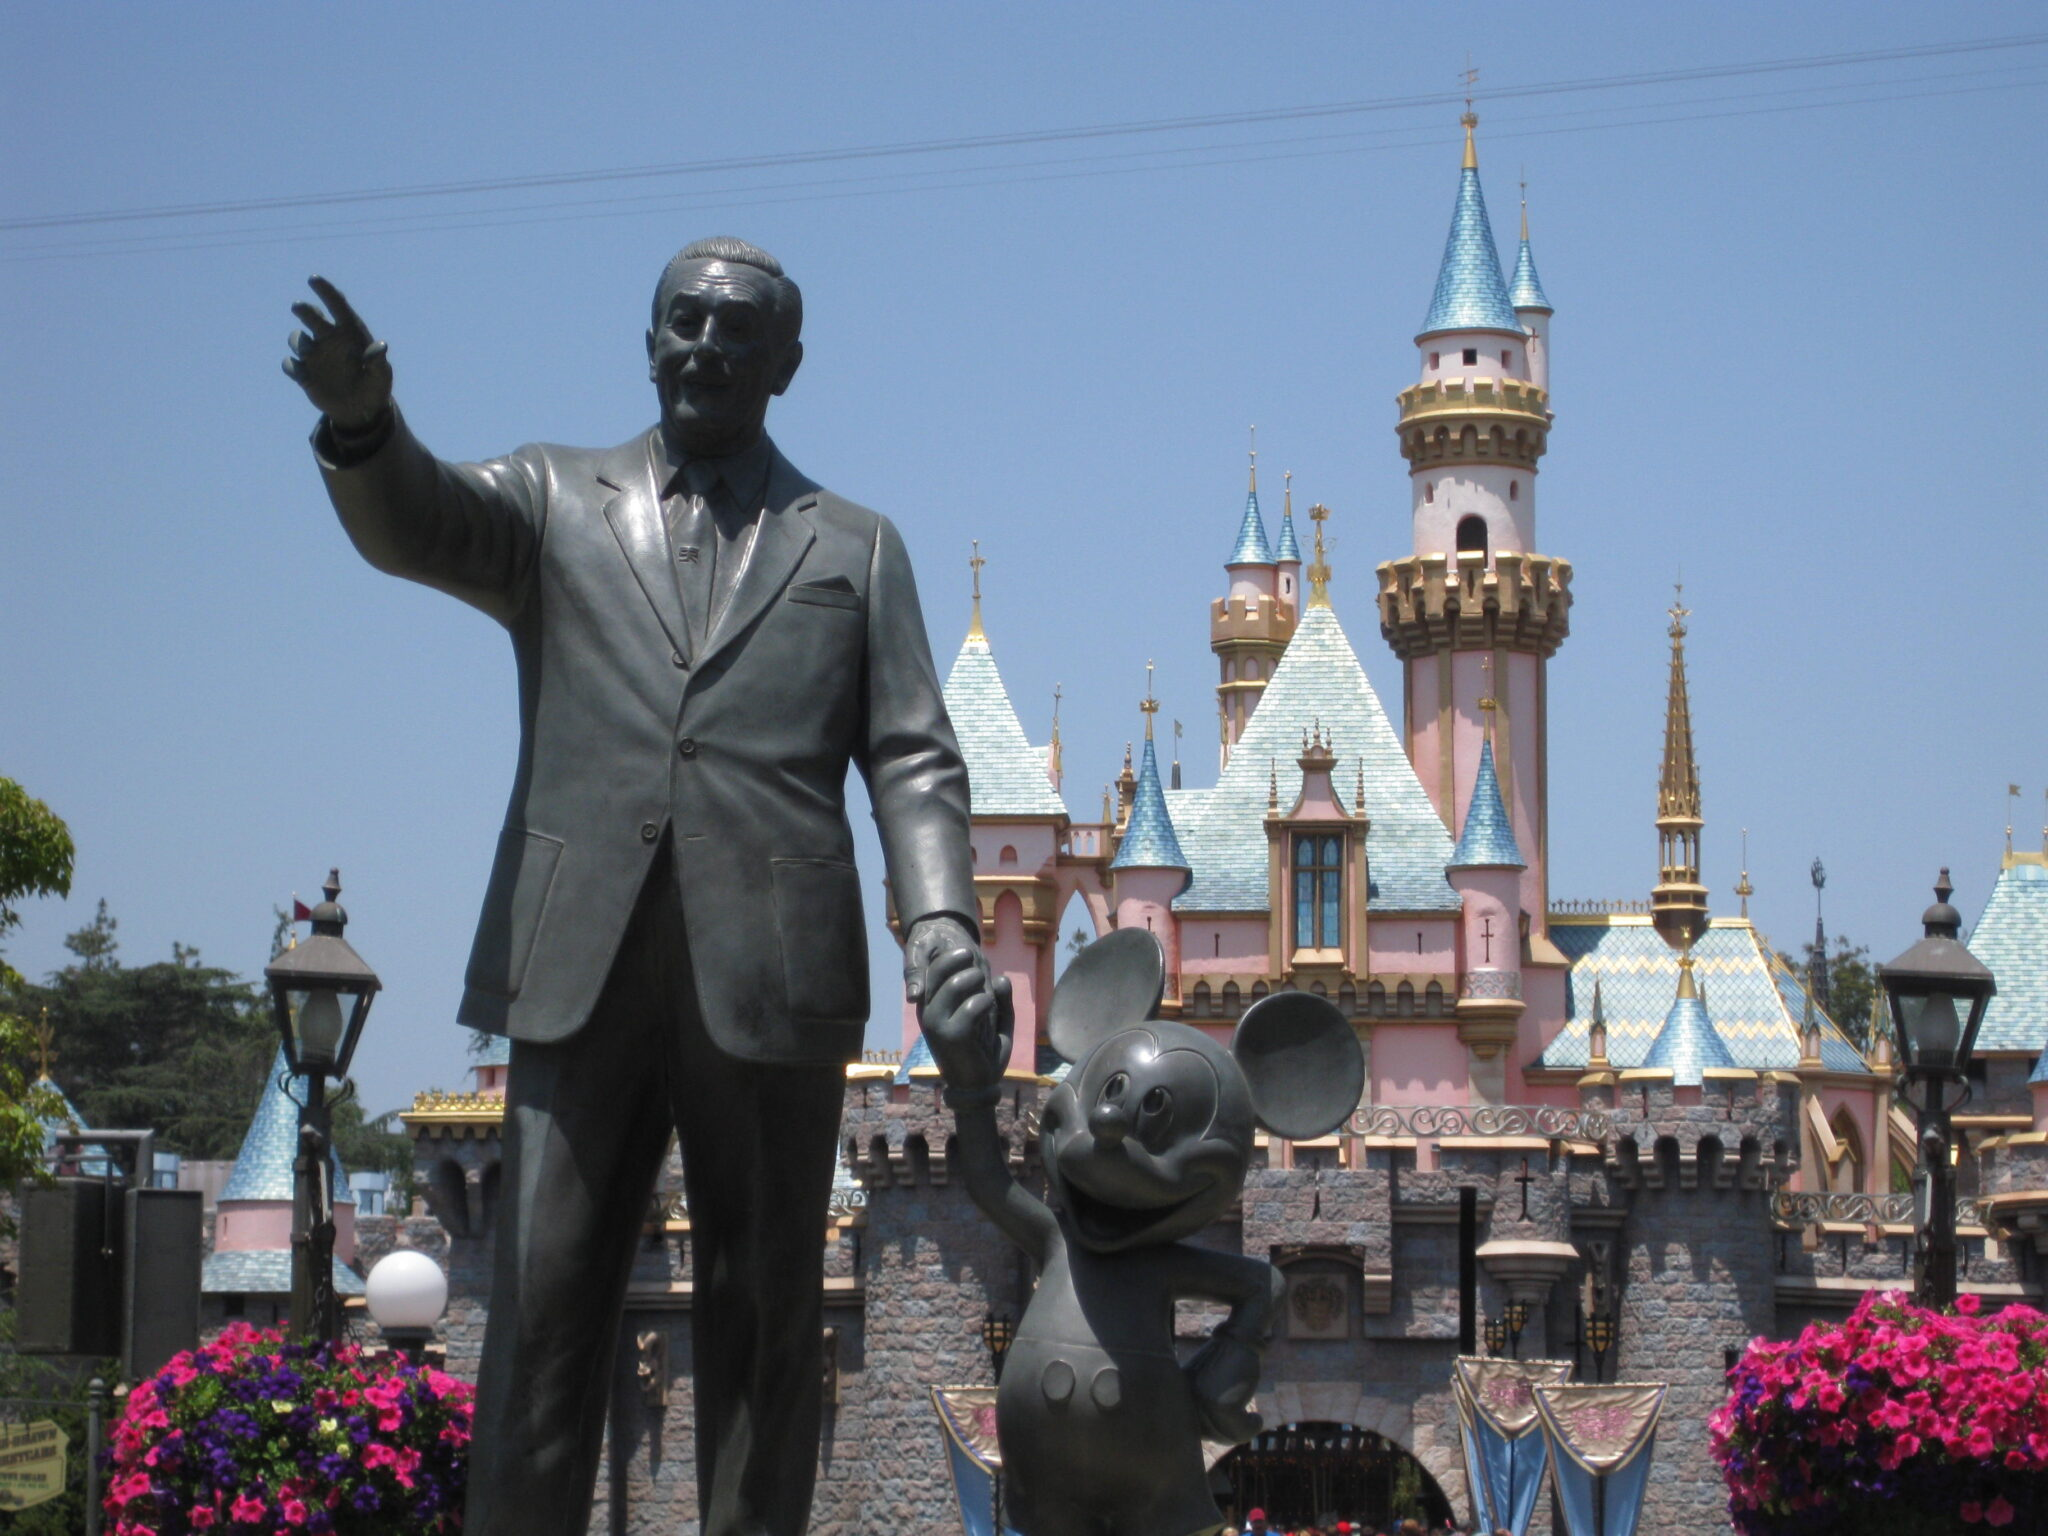 Walt Disney – The Man Behind the Mouse